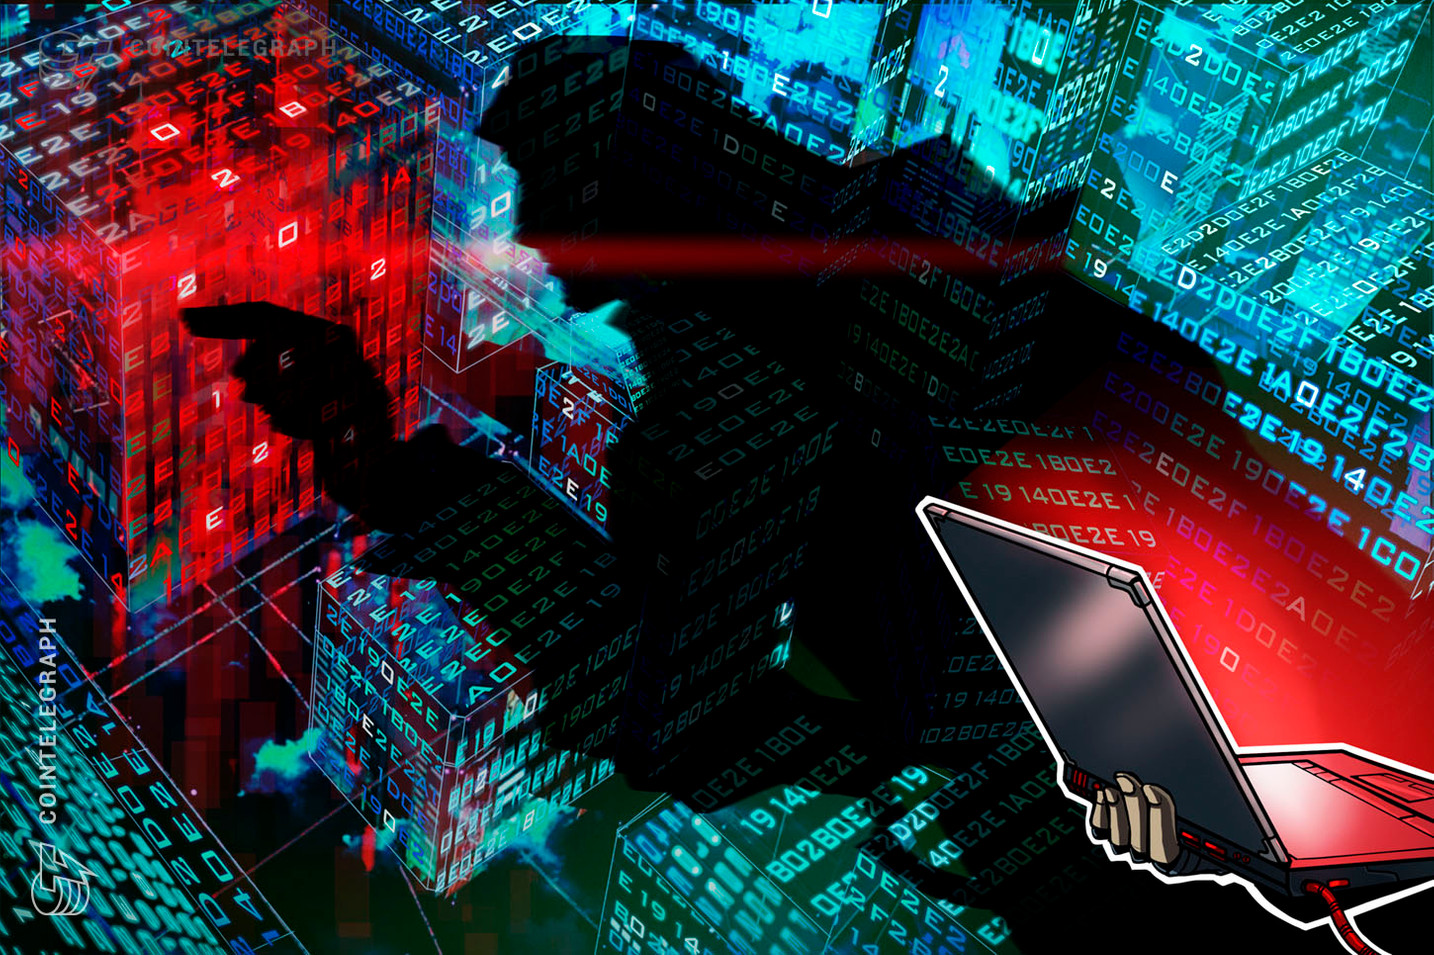 Poly Network hacker appears ready to return stolen funds